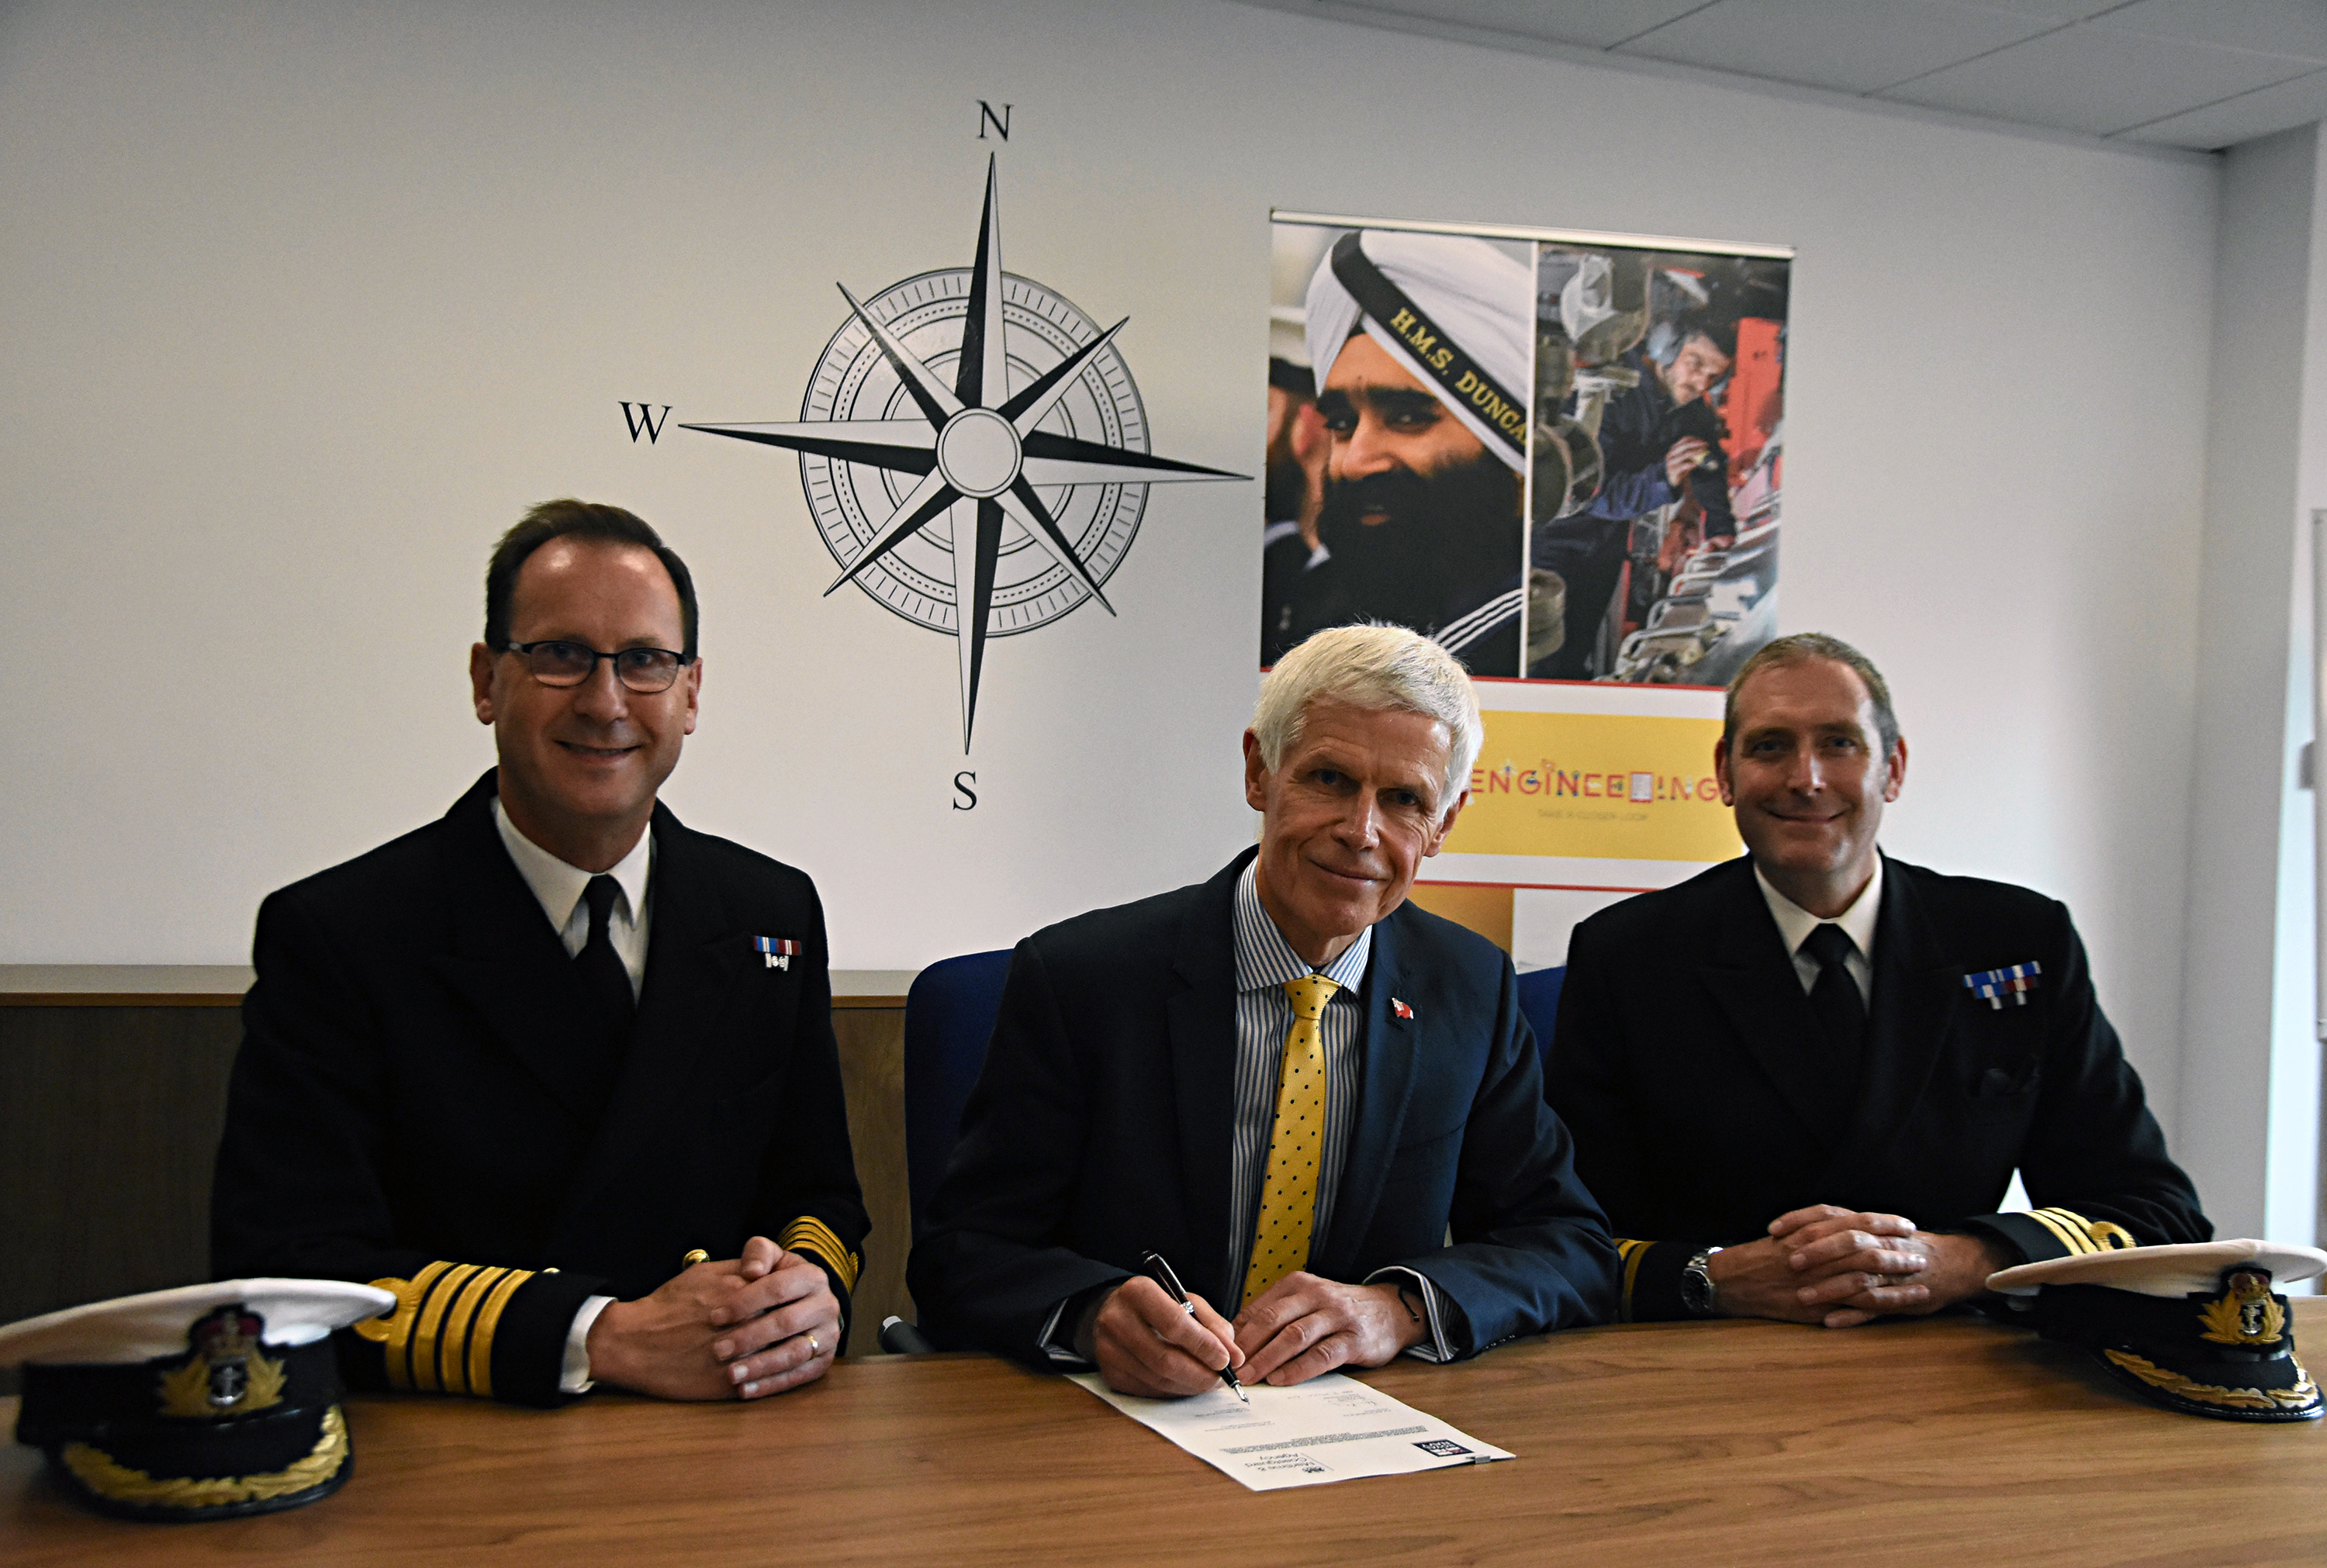 UK Ship Register and Royal Navy sign MOU to retrain seafarers to gain employment in the wider UK maritime sector